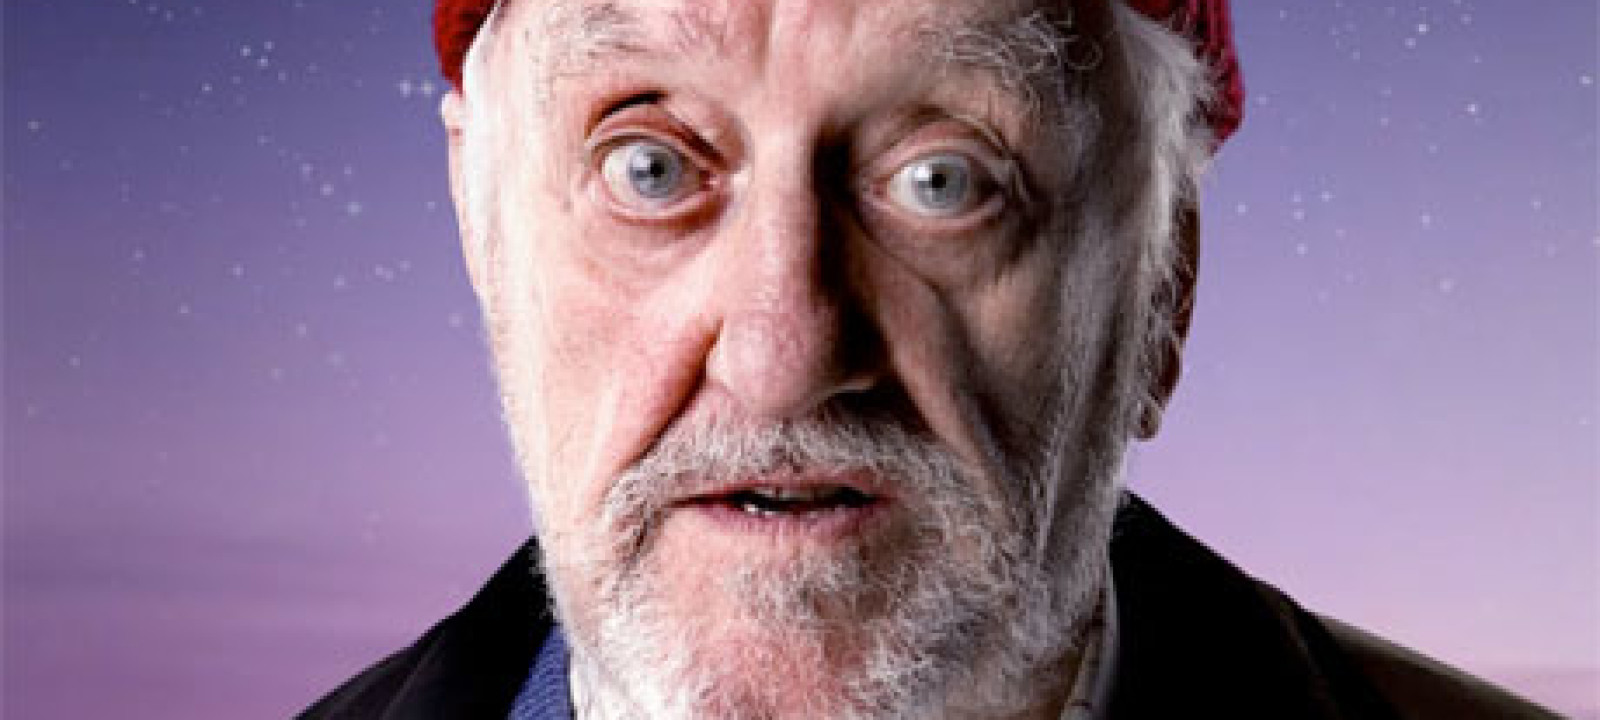 Wilfred, as played by Bernard Cribbins